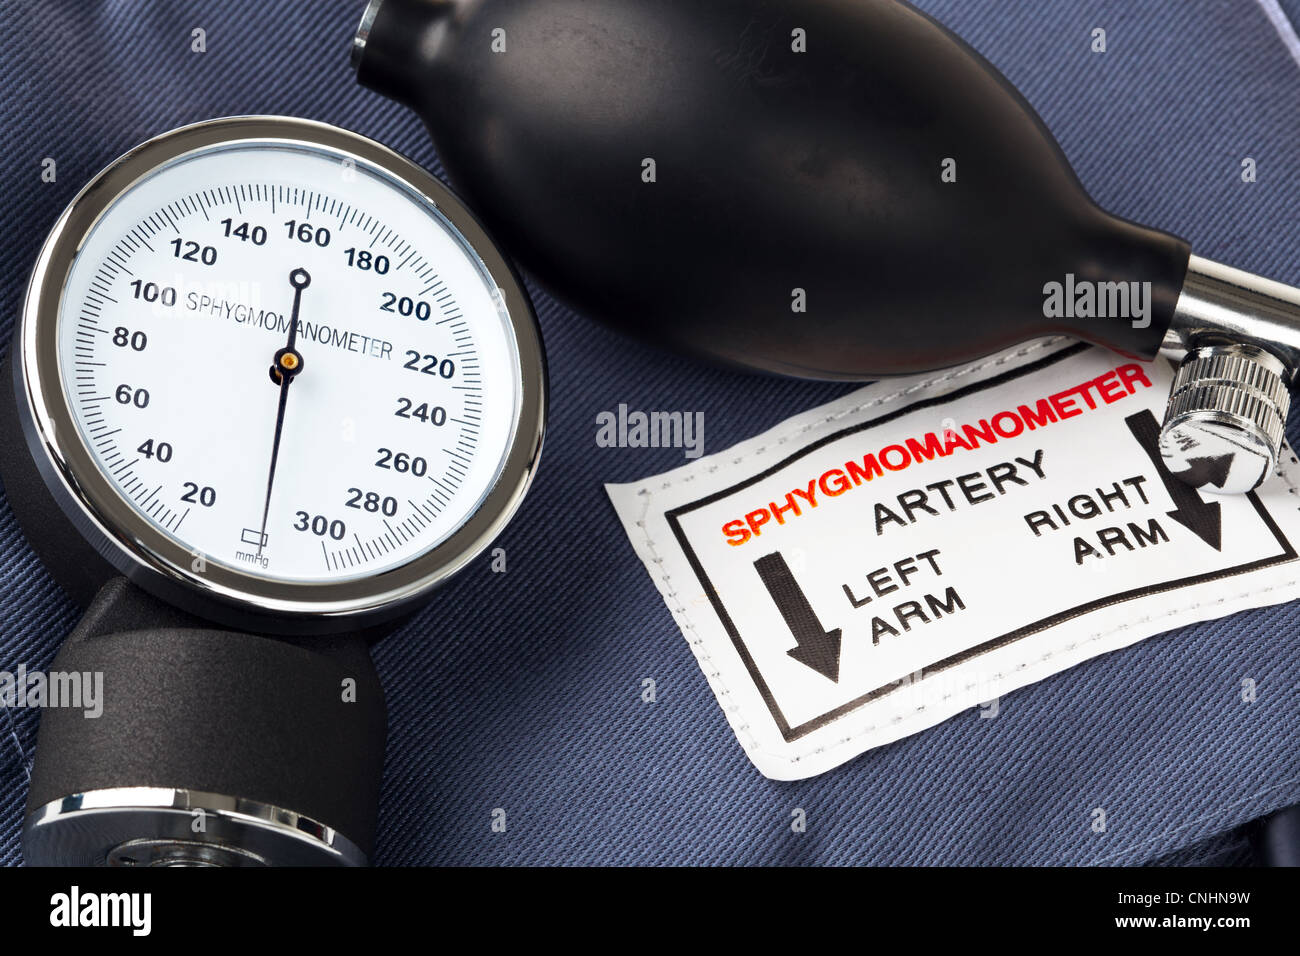 Photo of a Sphygmomanometer, the medical tool used to measure blood pressure. - Stock Image